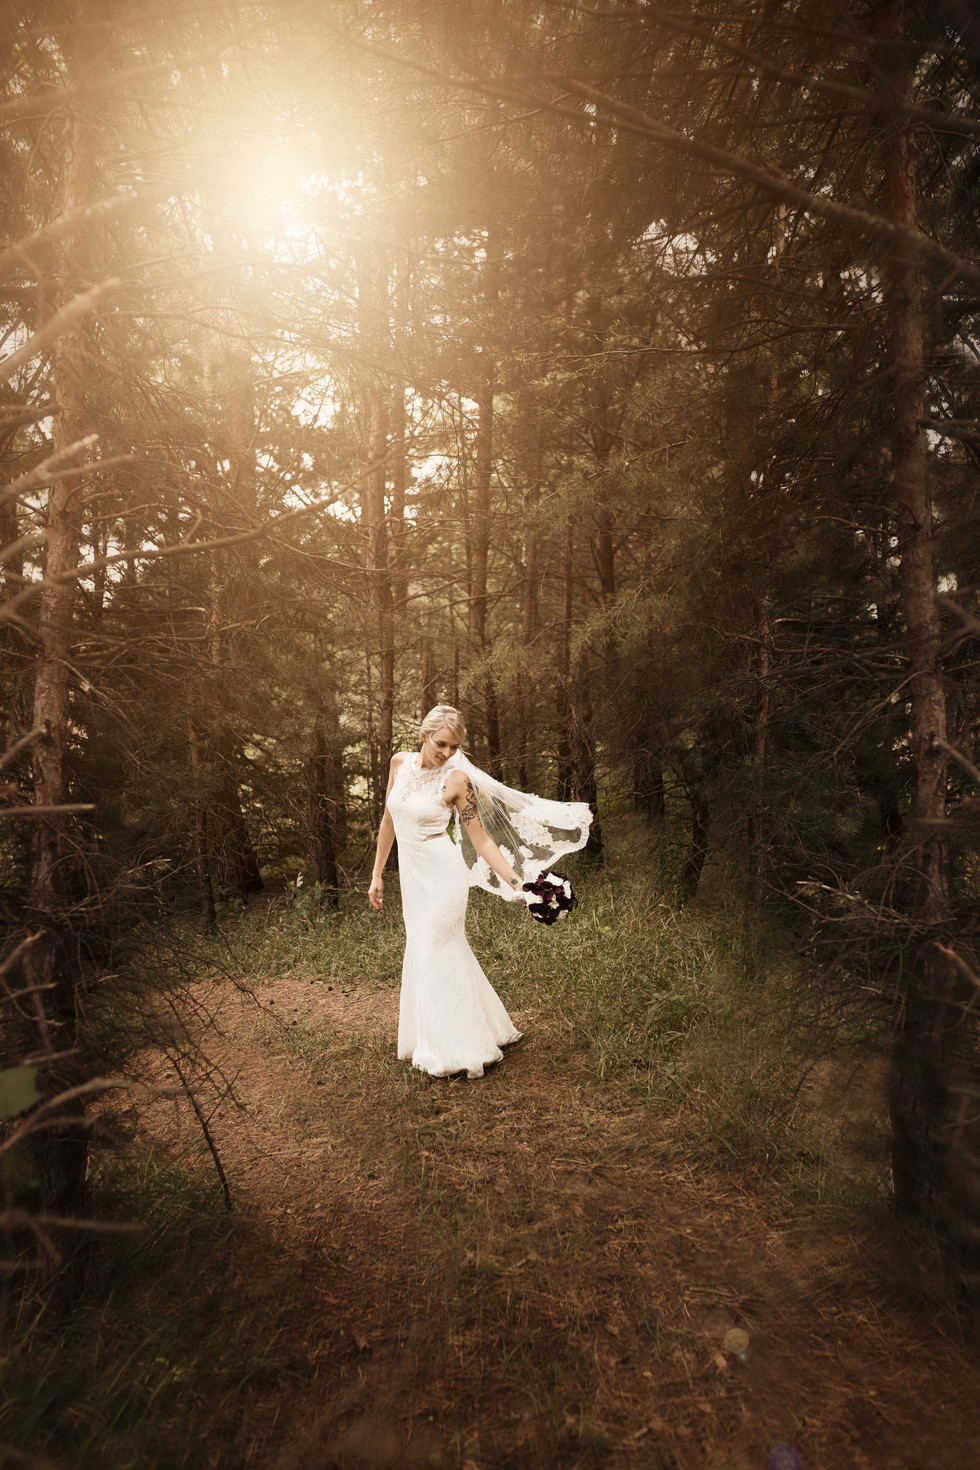 Bride in the woods with flowing veil